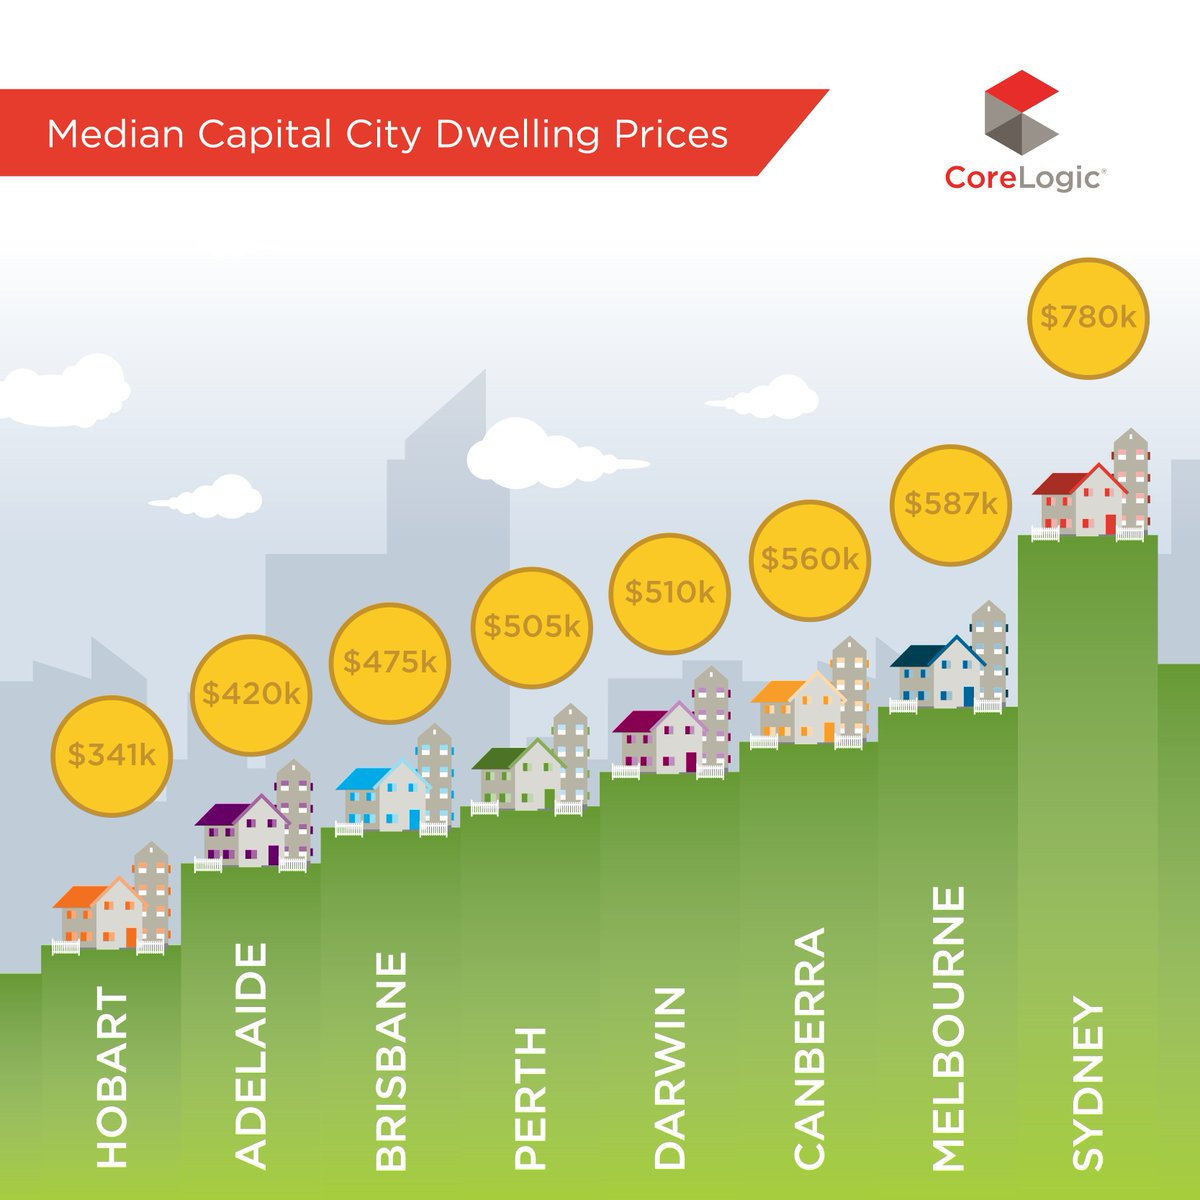 What's the median dwelling price in your capital city? #property #realestateau https://t.co/Y23JRt2hs0